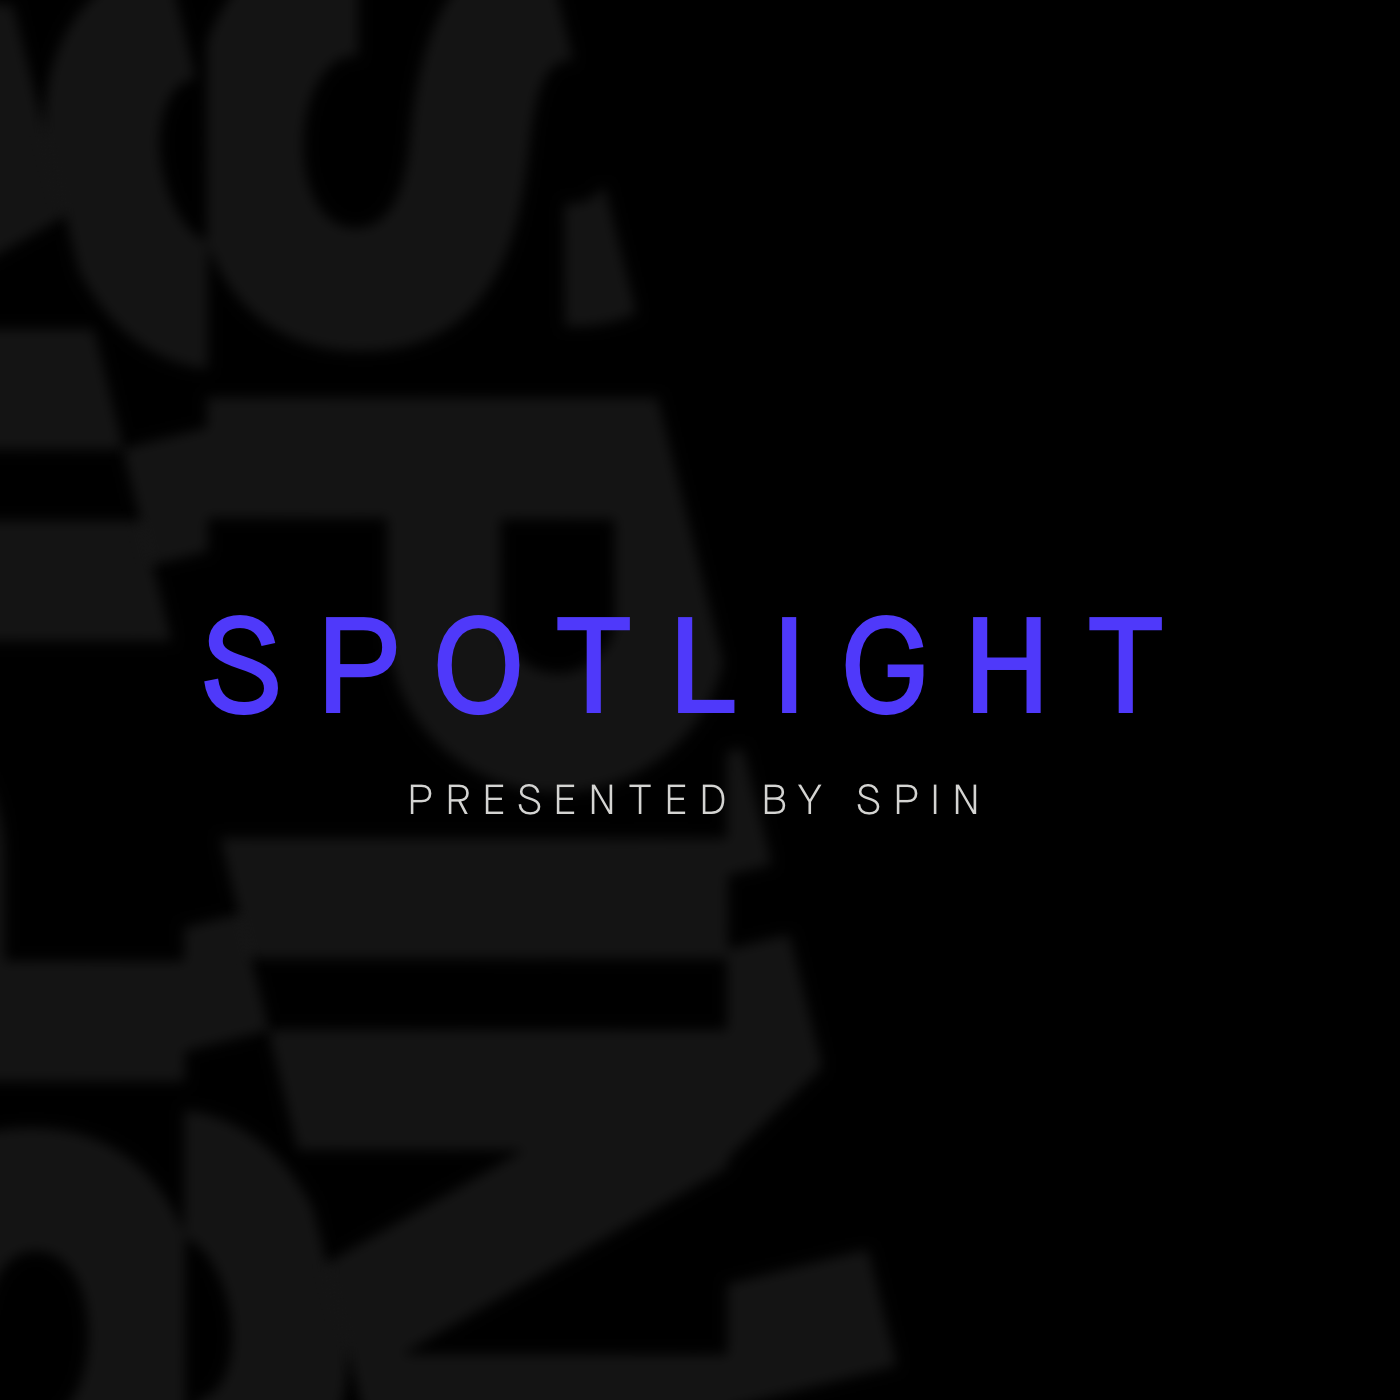 Spotlight presented by Spin